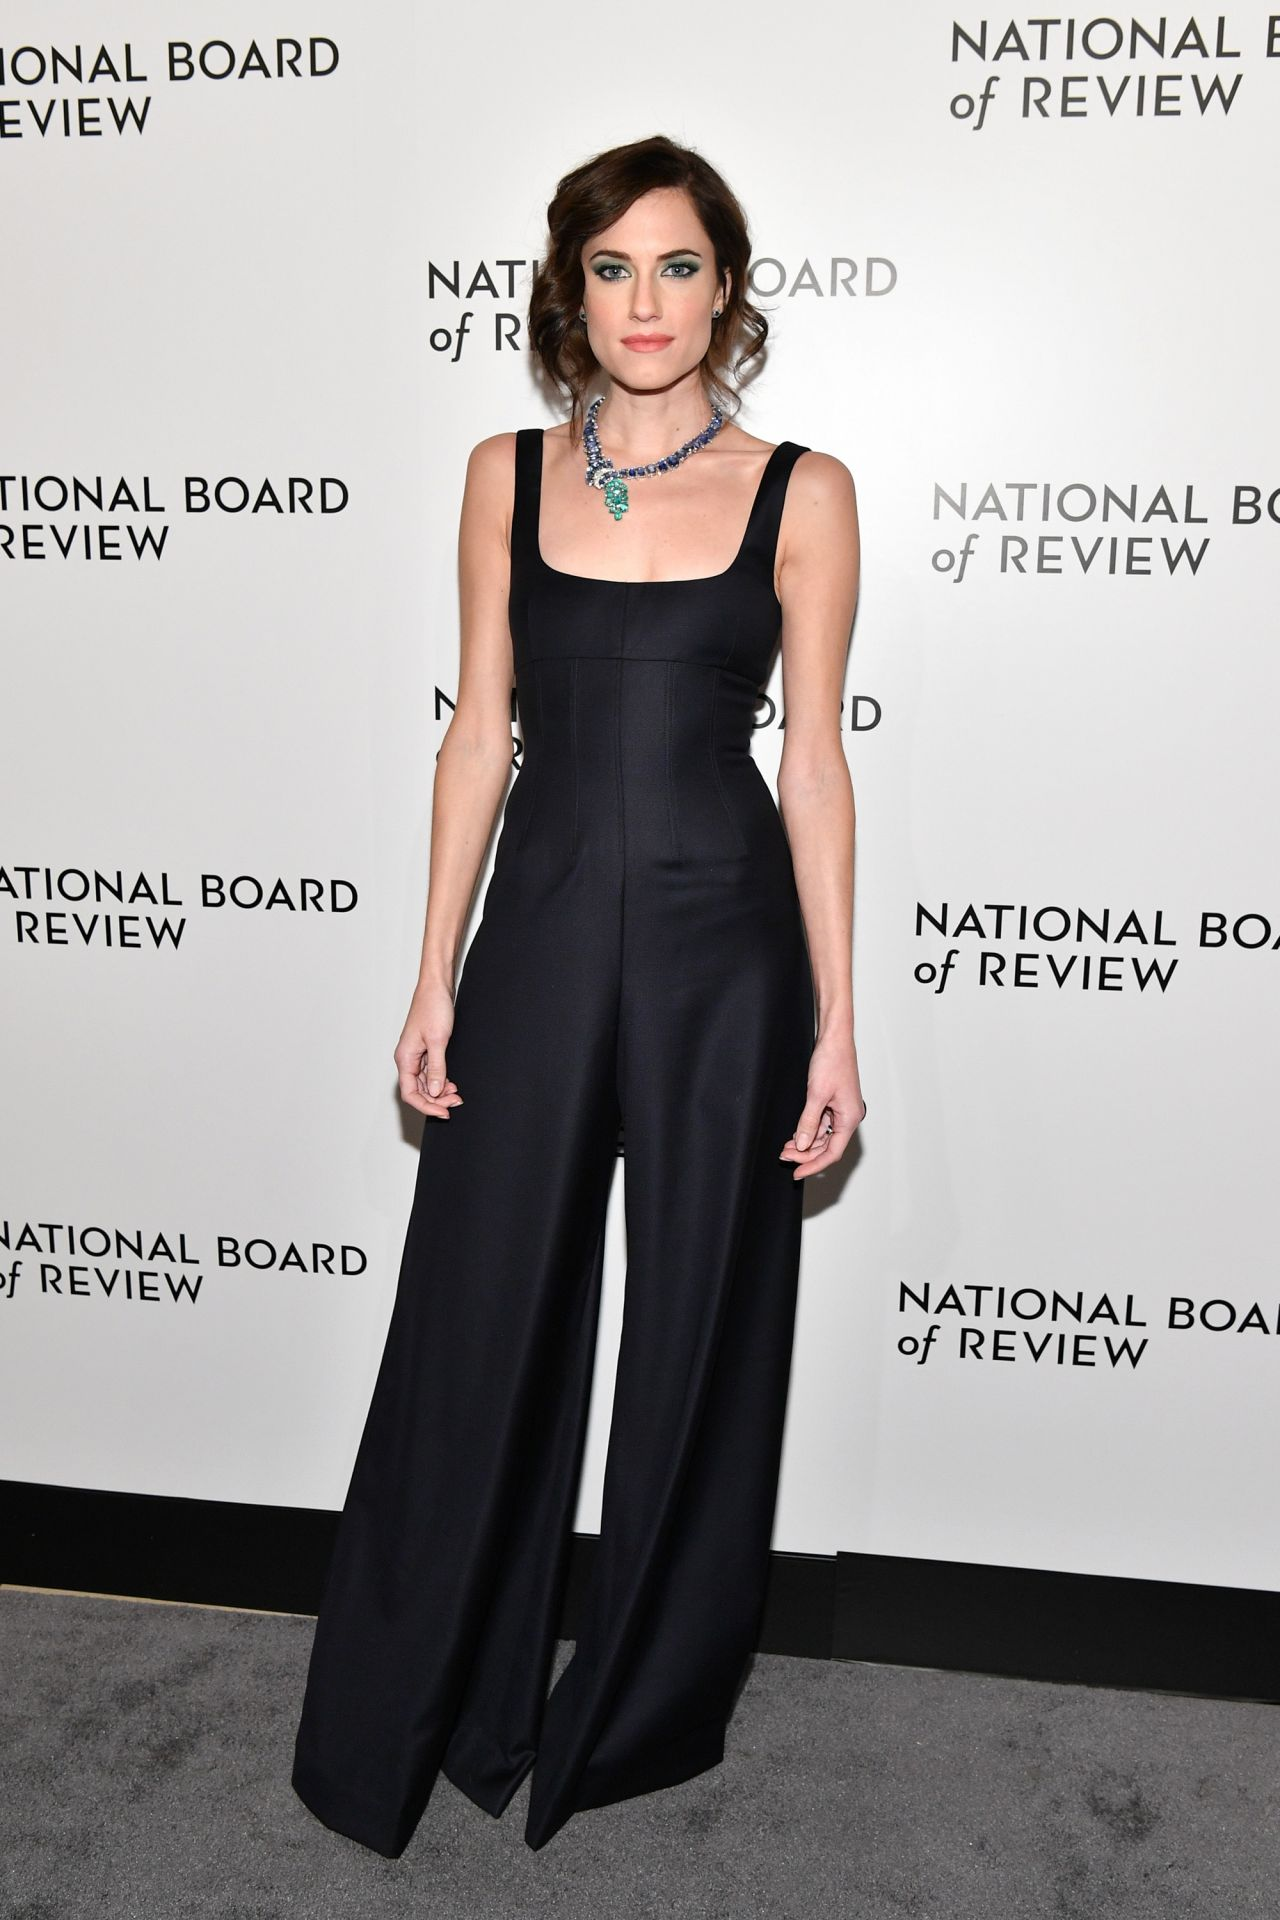 http://celebmafia.com/wp-content/uploads/2018/01/allison-williams-the-national-board-of-review-annual-awards-gala-in-new-york-6.jpg